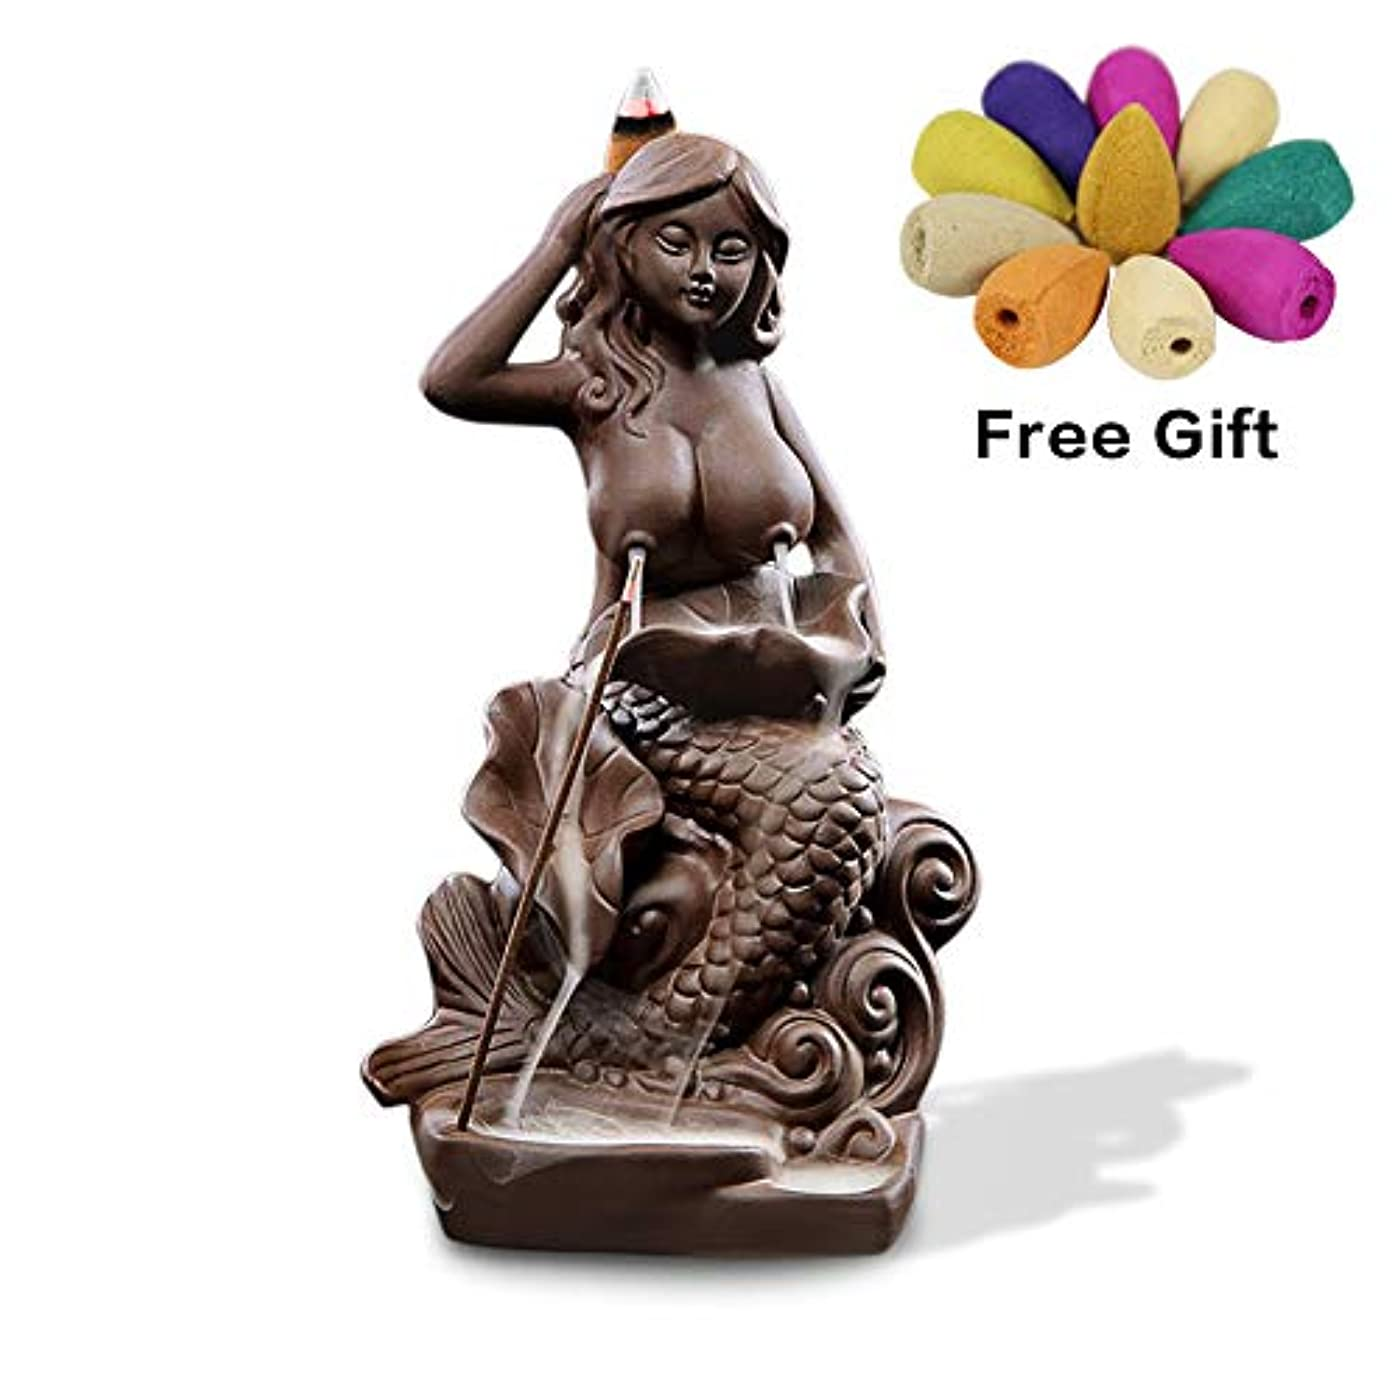 水族館マディソンマルクス主義者(Style9) - OTOFY Mermaid Ceramic Incense Holder Backflow Incense Burner with 10 Incense Cones Artwork Home Decor...